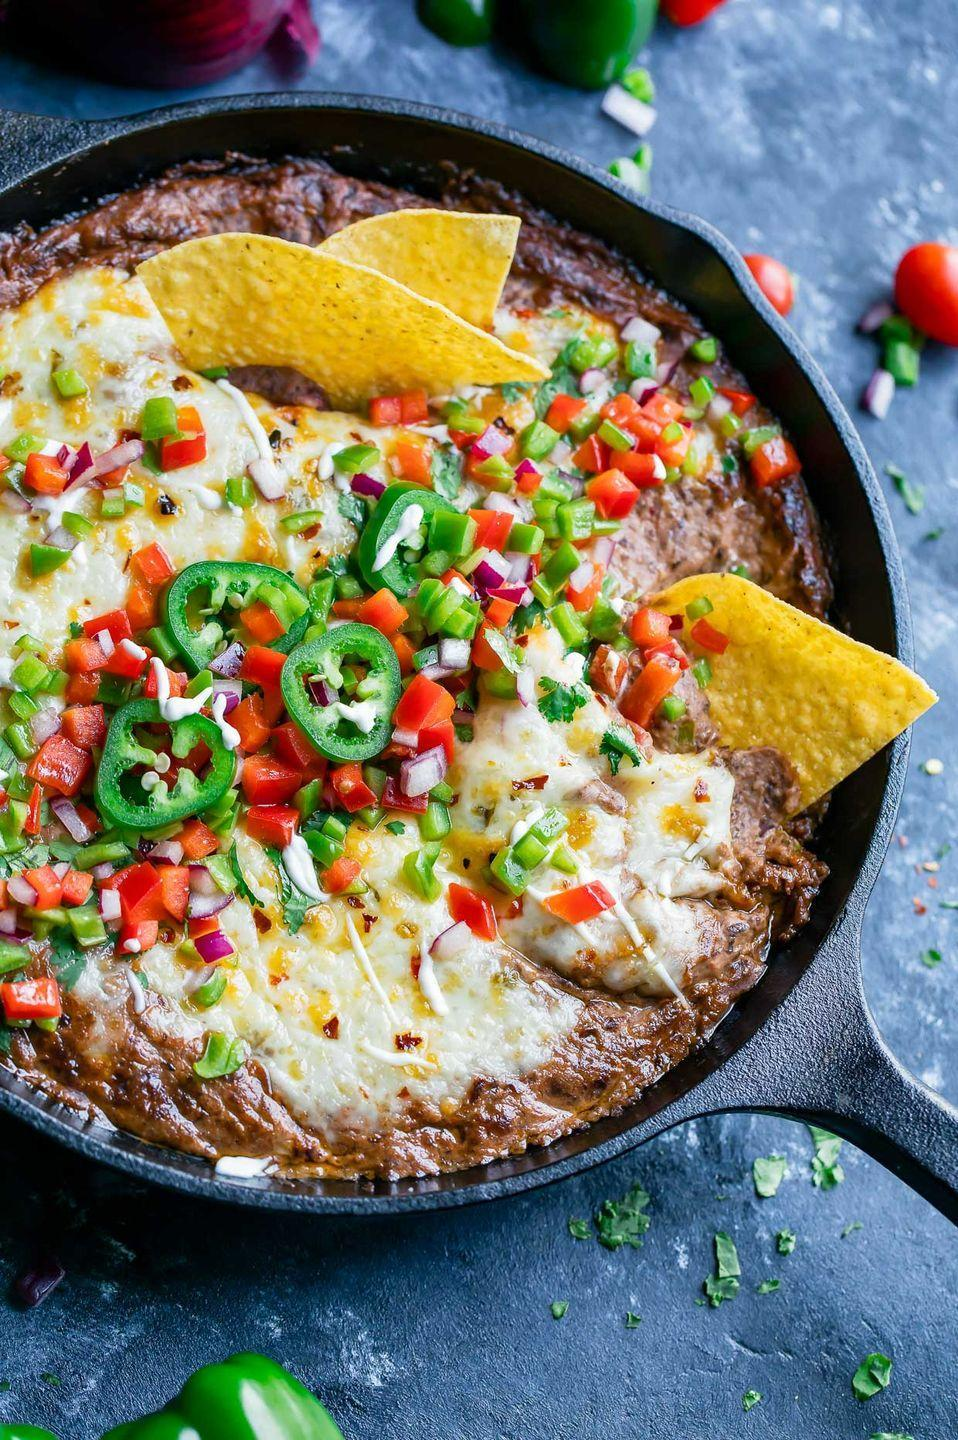 "<p>The Instant Pot allows you to make this dip on the cheap because you can opt for a bag of dried beans instead of a can!</p><p>Get the recipe from <a href=""https://peasandcrayons.com/2017/09/instant-pot-black-bean-dip.html"" rel=""nofollow noopener"" target=""_blank"" data-ylk=""slk:Peas and Crayons"" class=""link rapid-noclick-resp"">Peas and Crayons</a>.</p>"